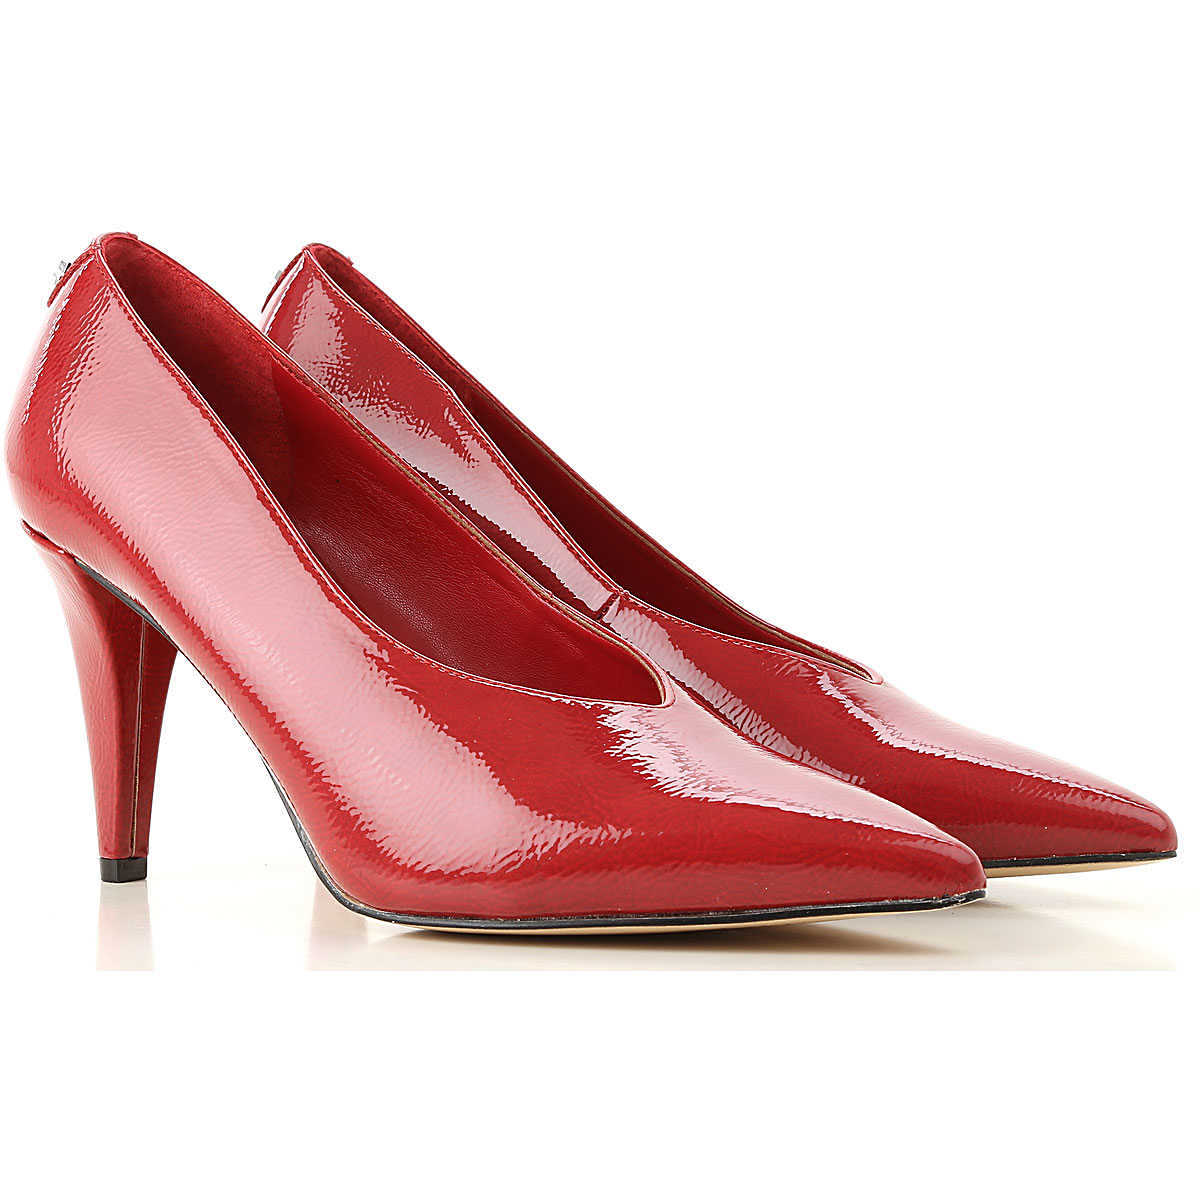 Guess Pumps & High Heels for Women On Sale in Outlet Red - GOOFASH